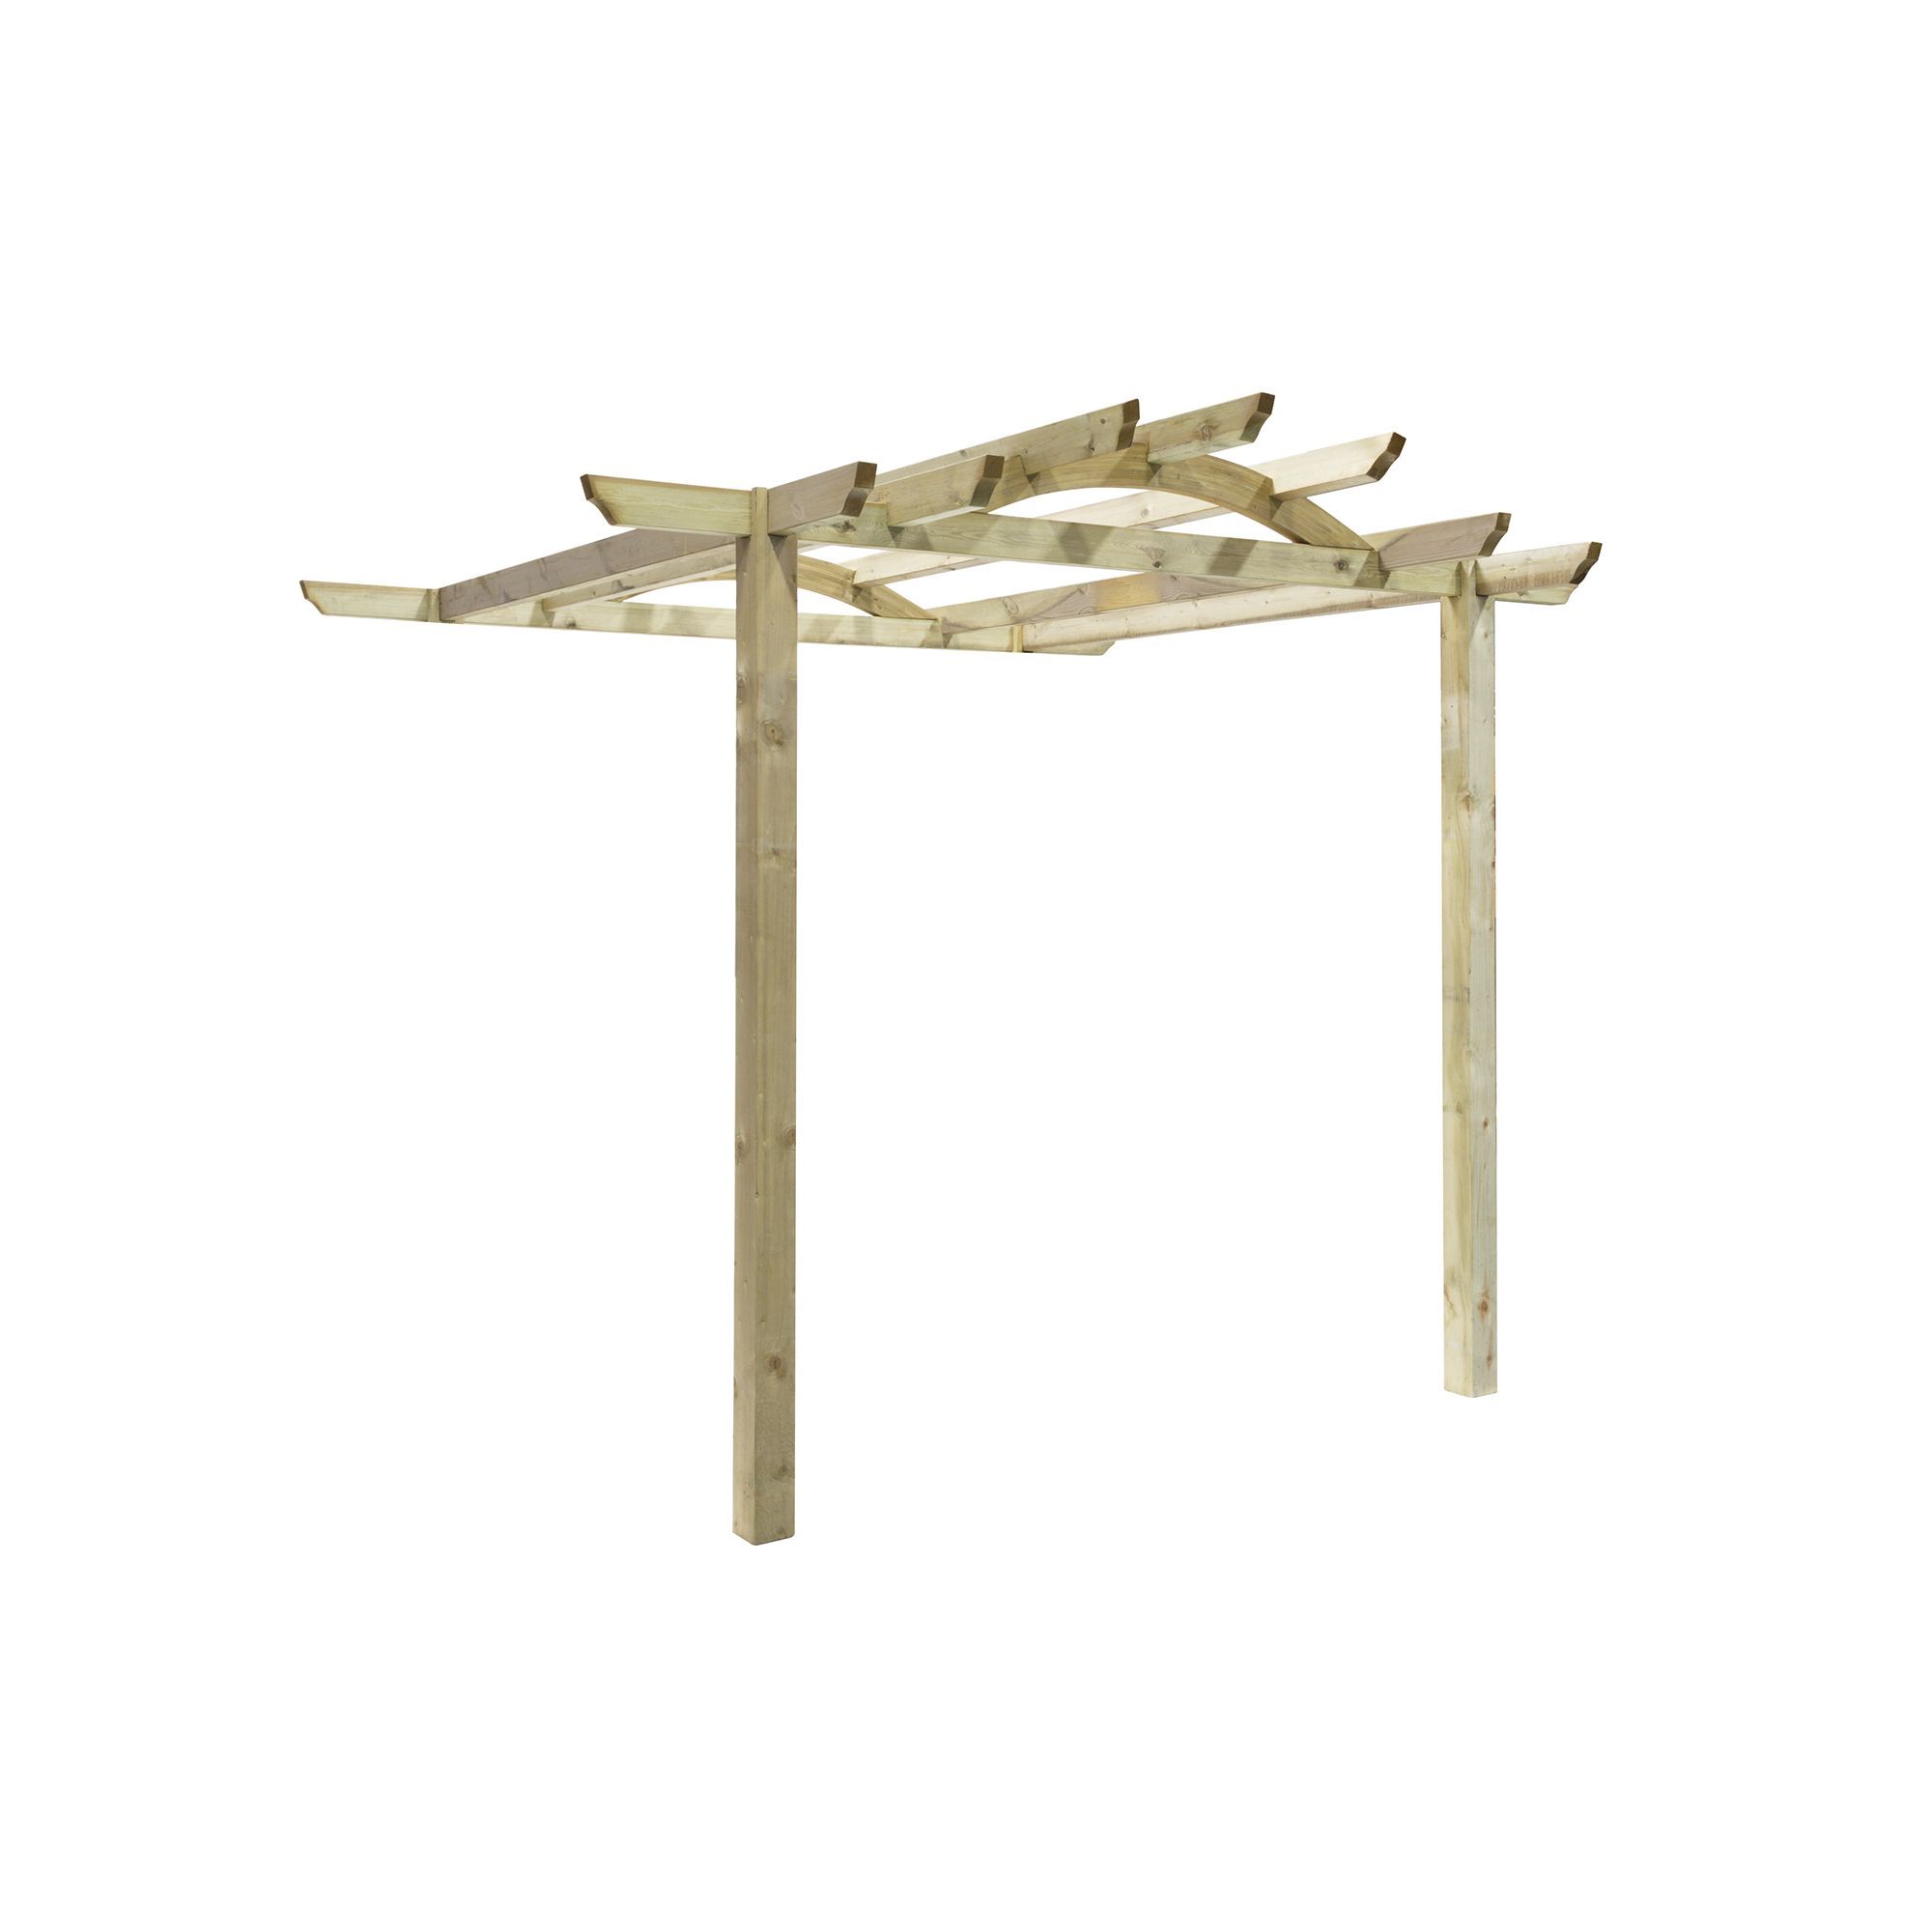 Tetbury Patio Pergola - Includes Bolt Down Anchors at Tesco Direct